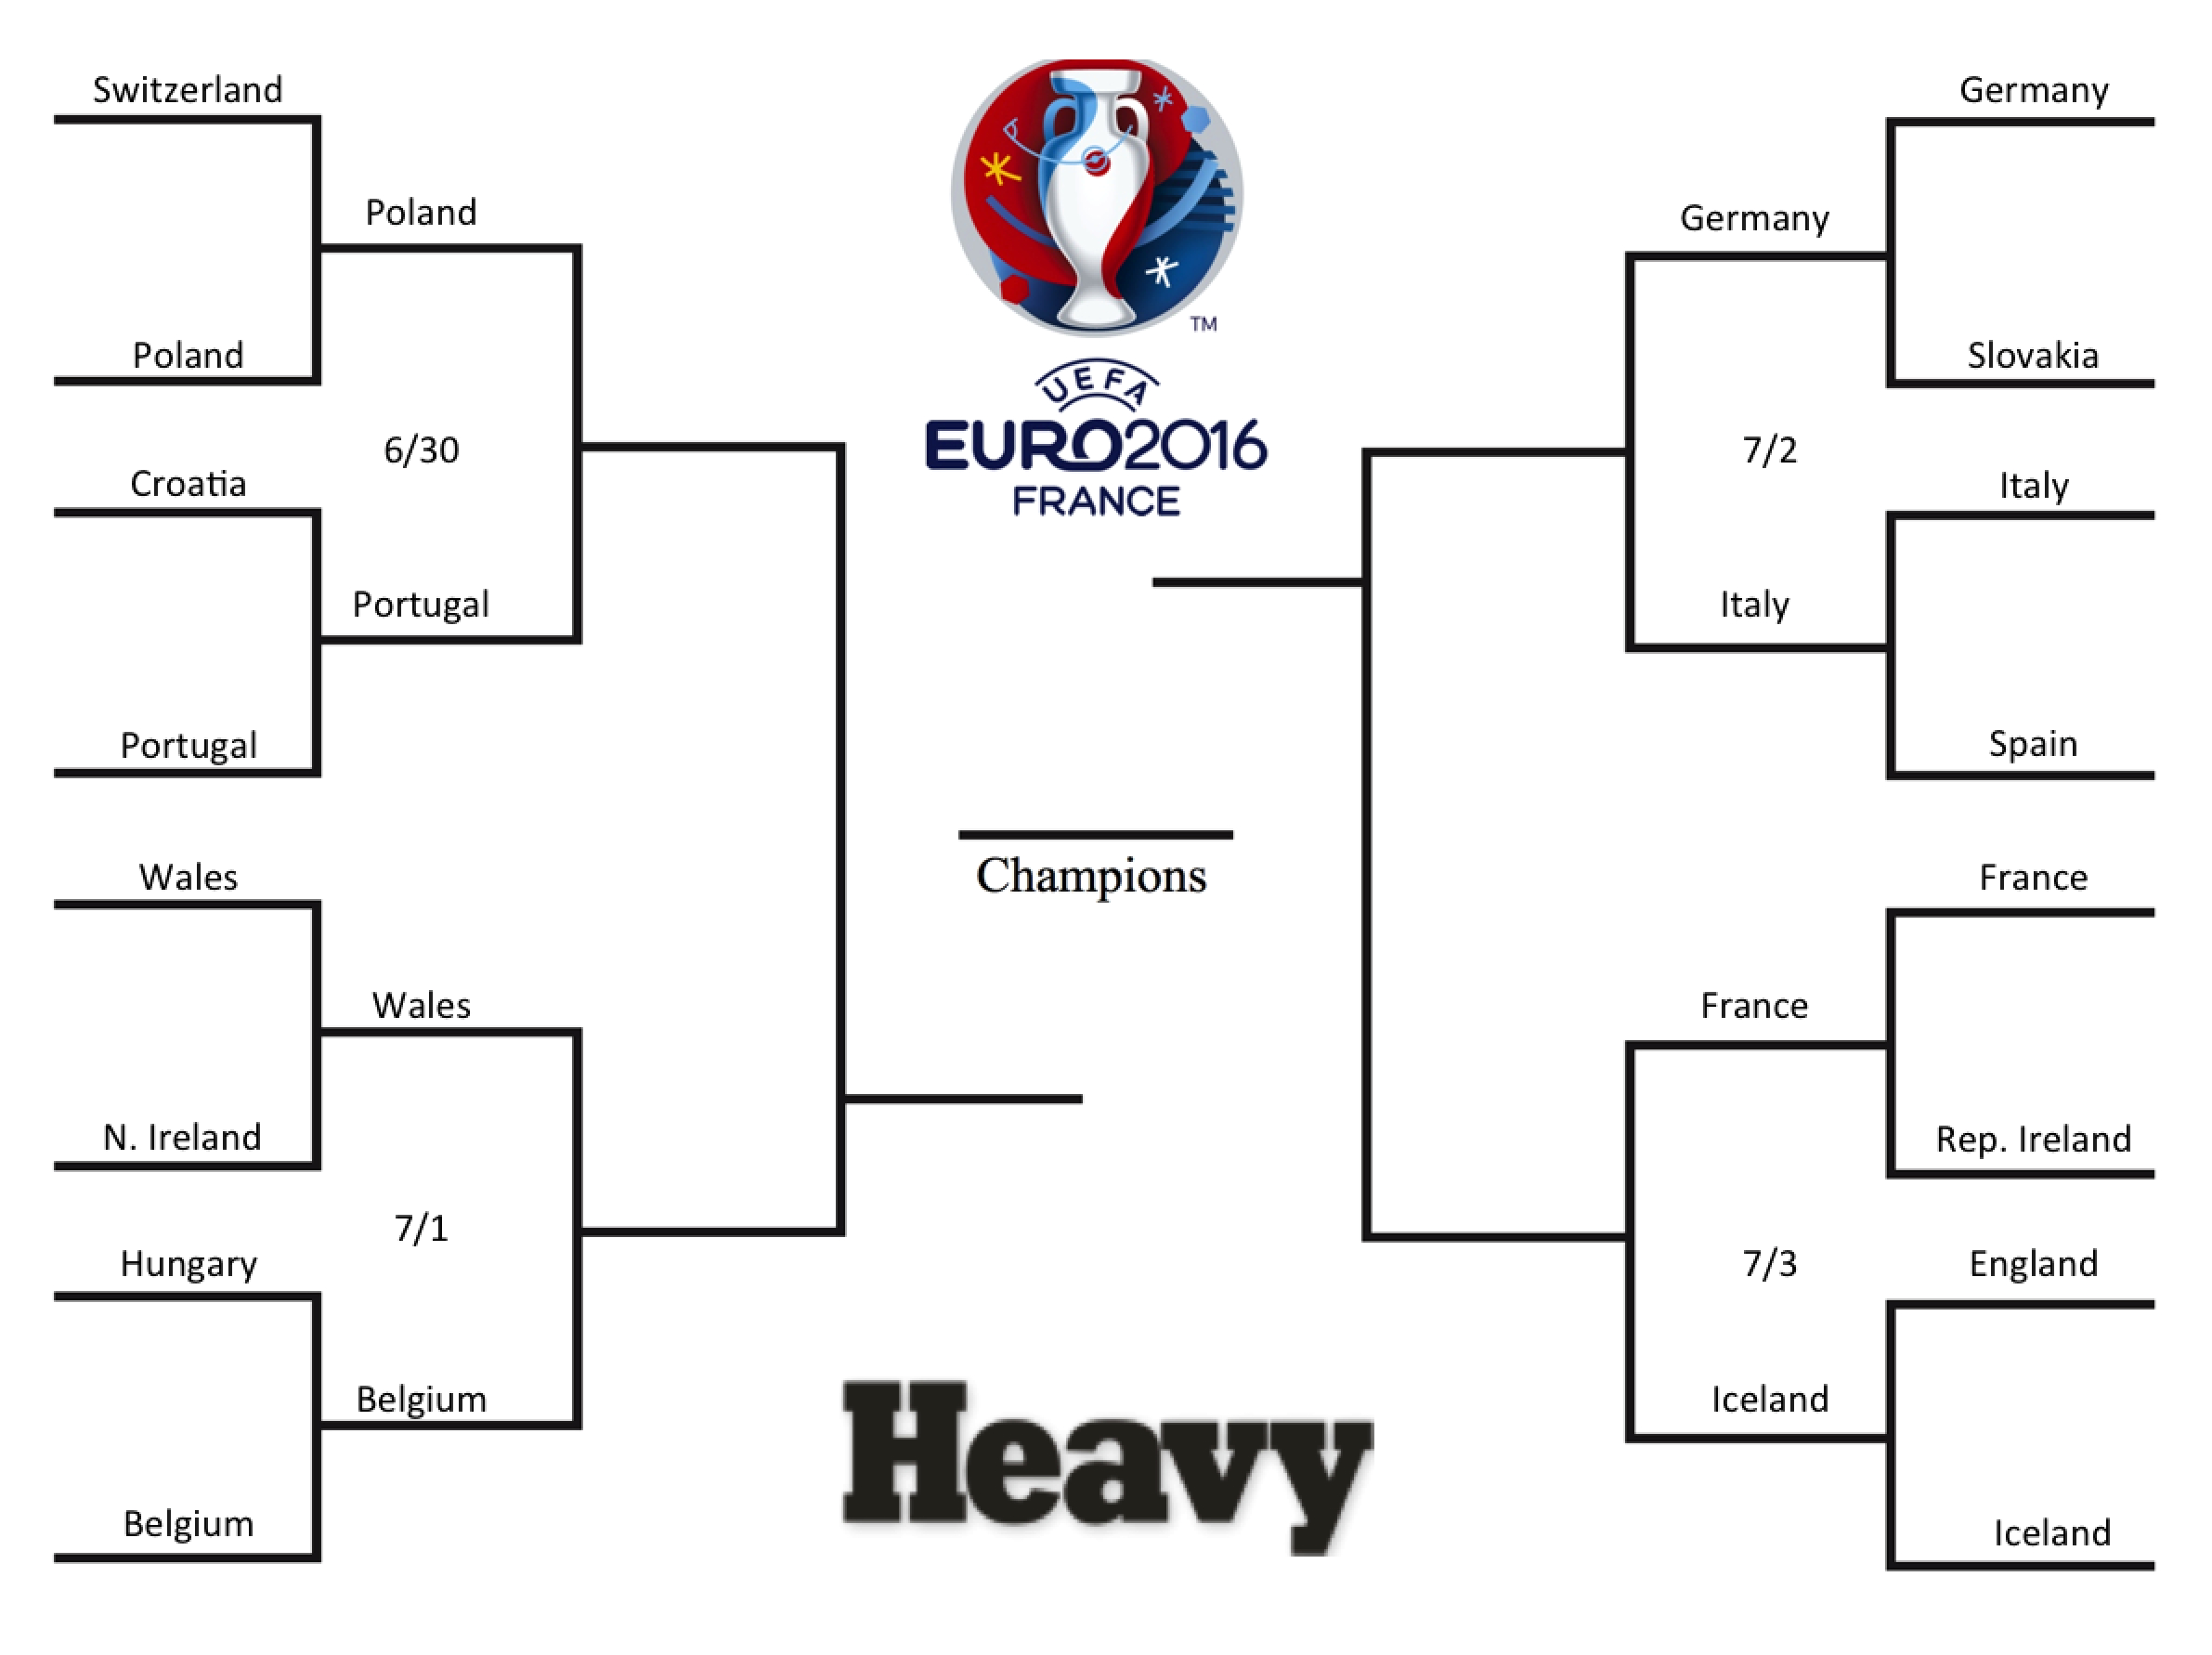 euro bracket 2016, euro 2016 bracket, euro standings, euro playoffs bracket, points, euro third place teams, schedule, euro schedule, euro bracket rounds schedule, goal differentials